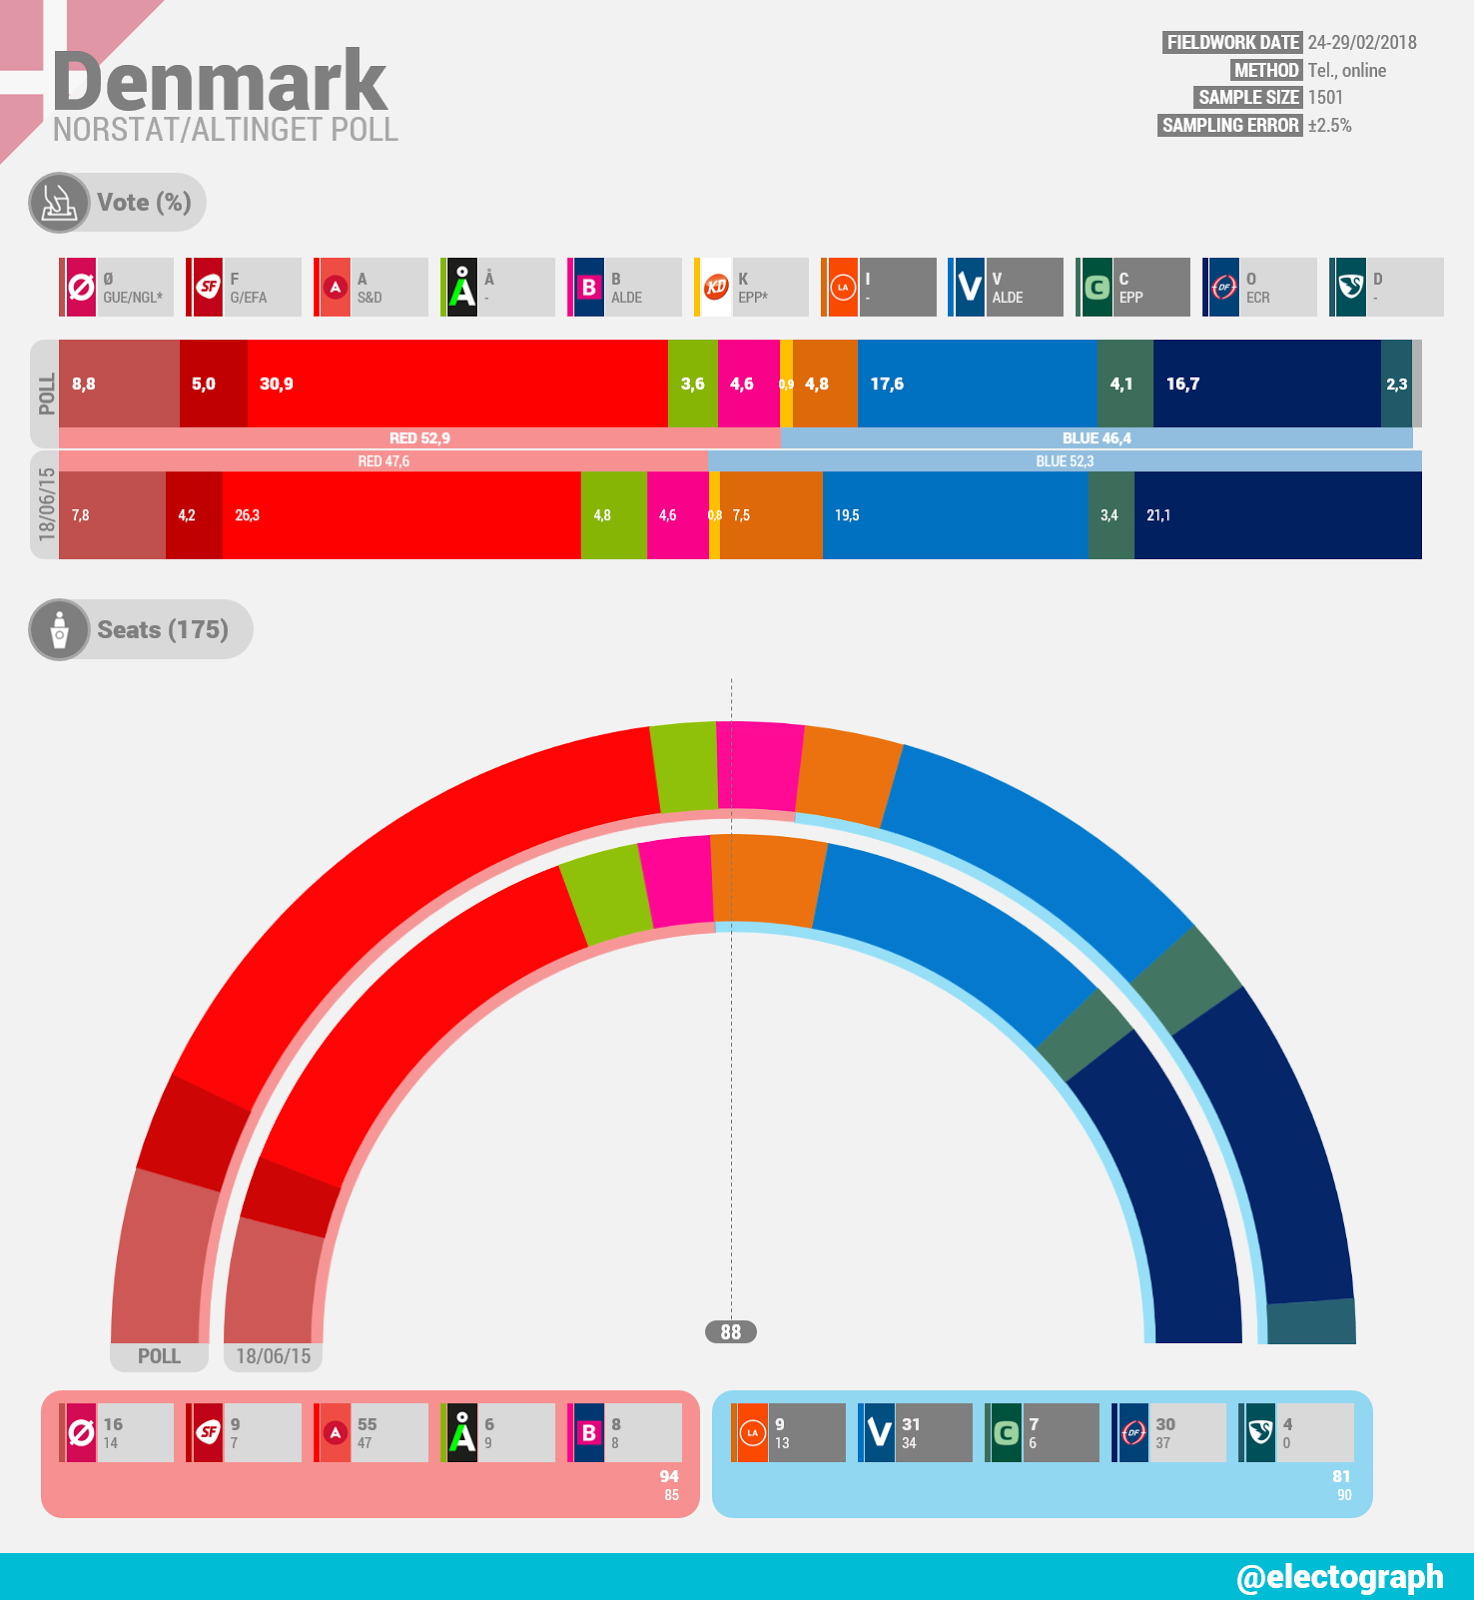 DENMARK Norstat poll chart for Altinget, January 2018